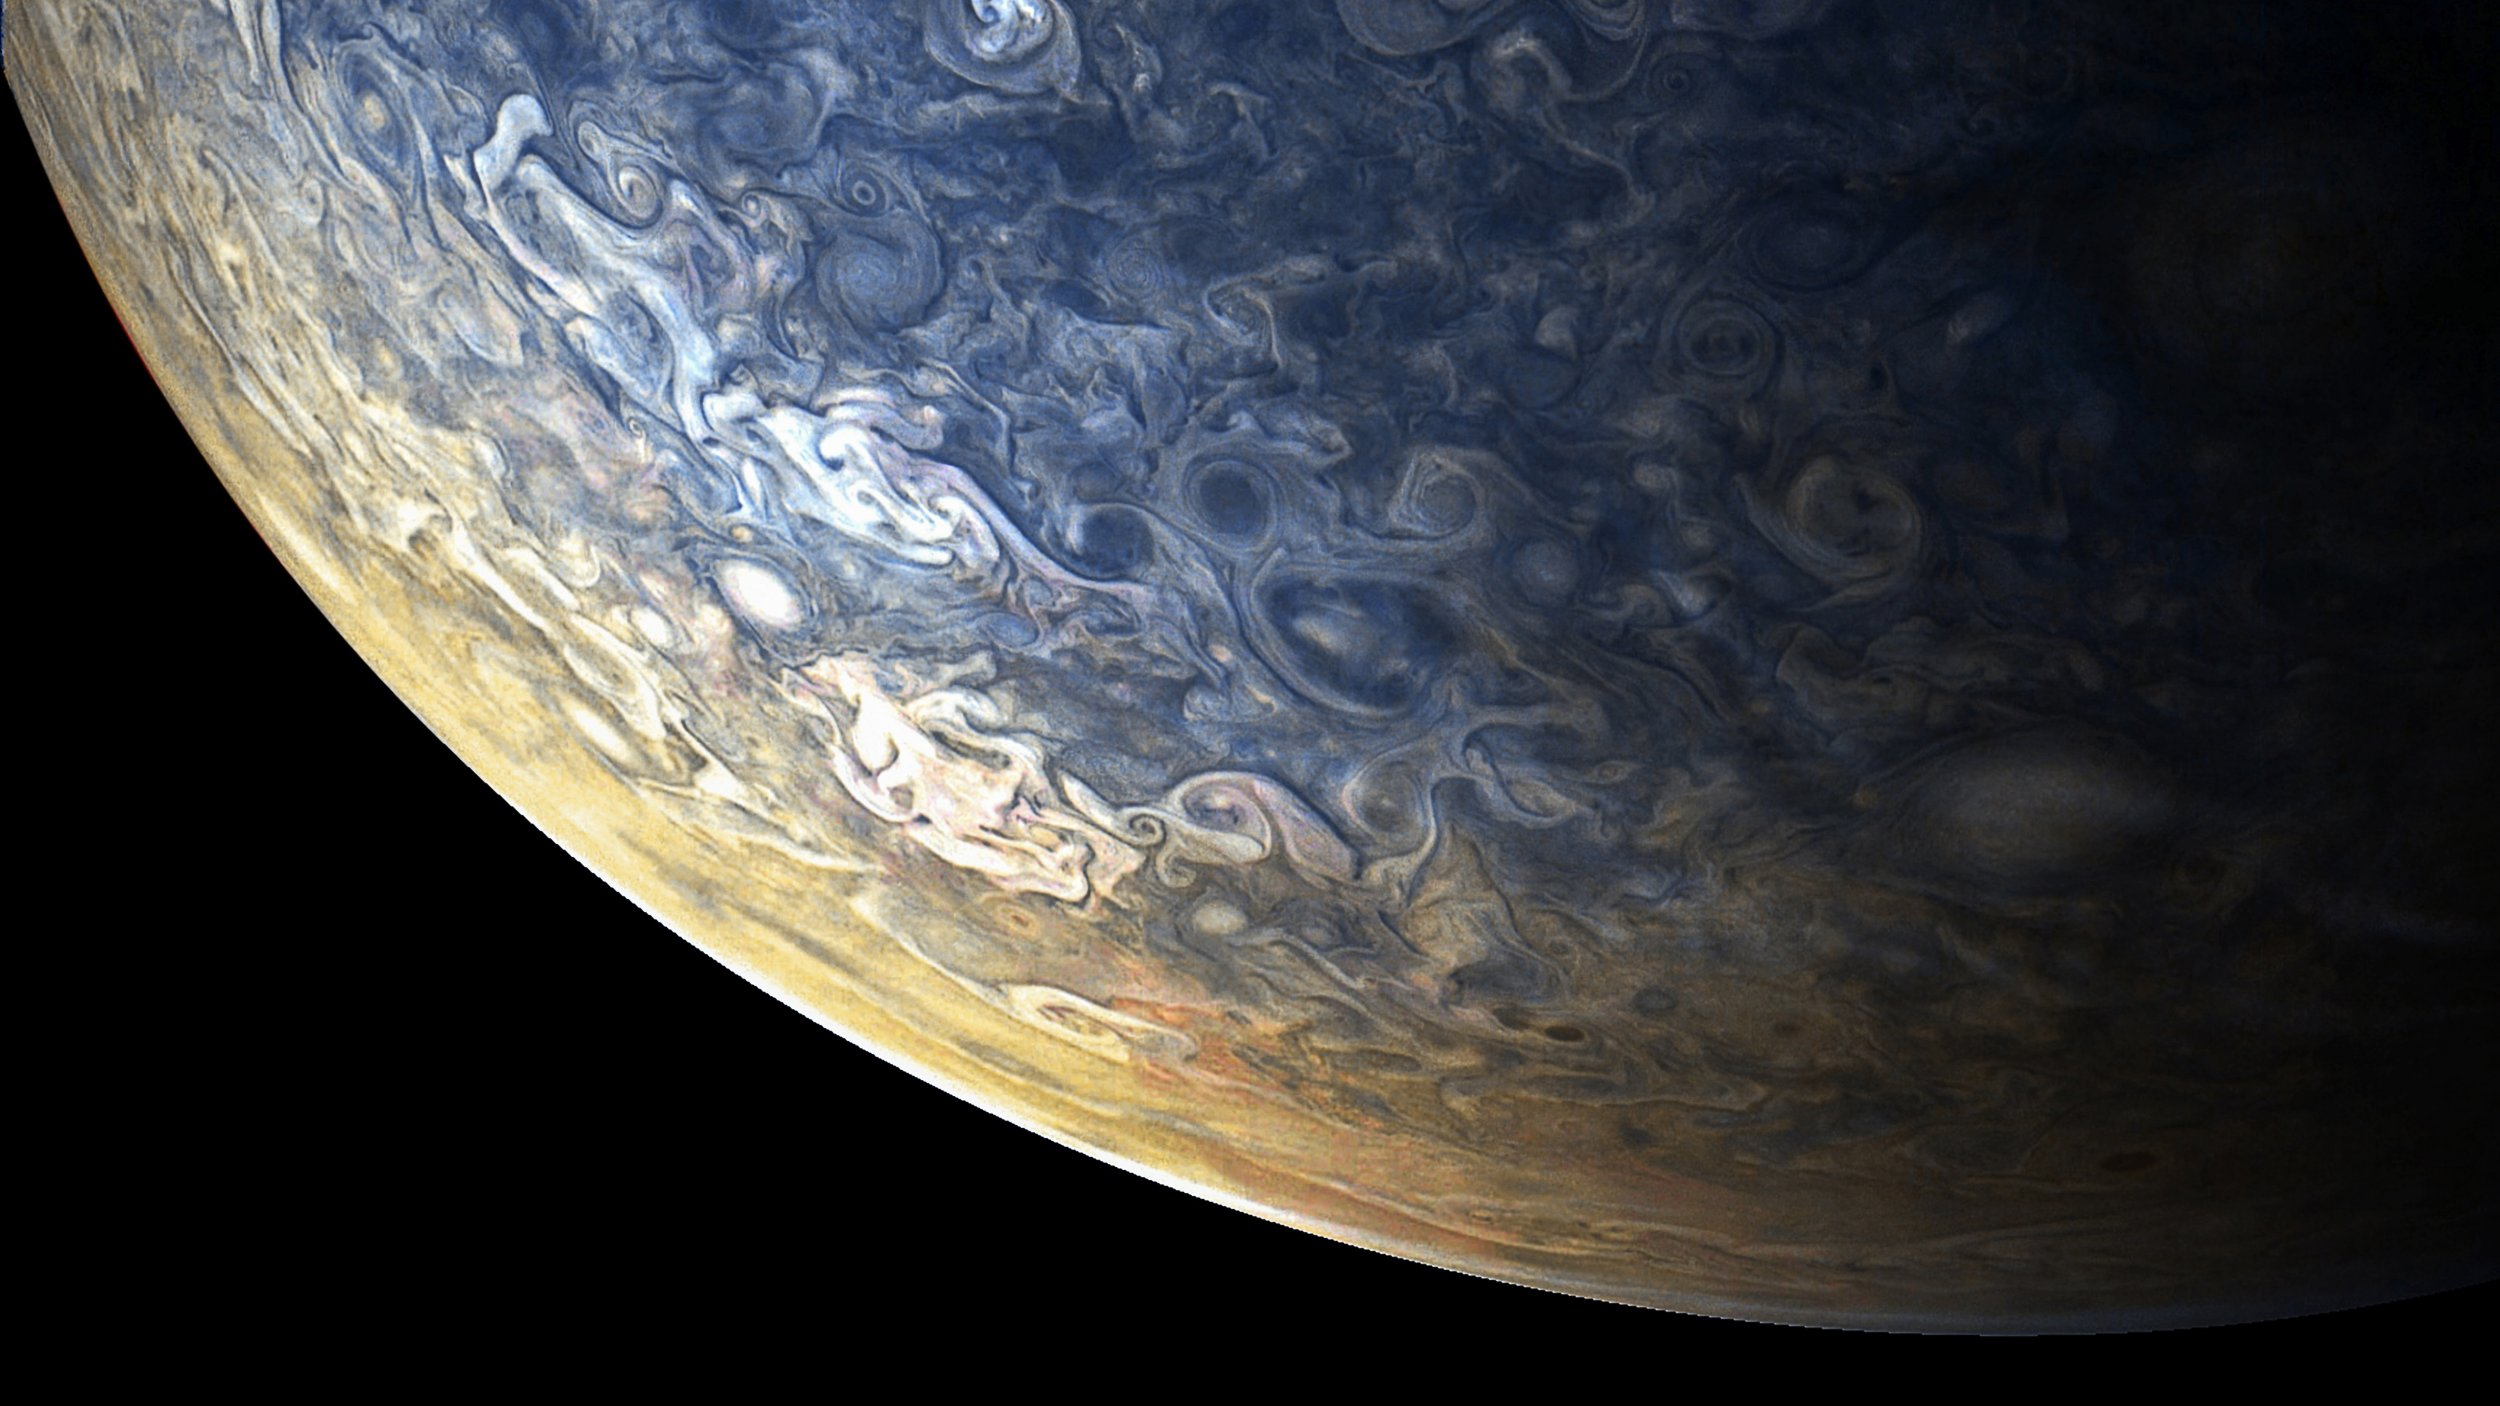 Making Science Exciting For Middle >> NASA Releases Treasure Trove of Incredible New Images of Jupiter From Its Juno Mission